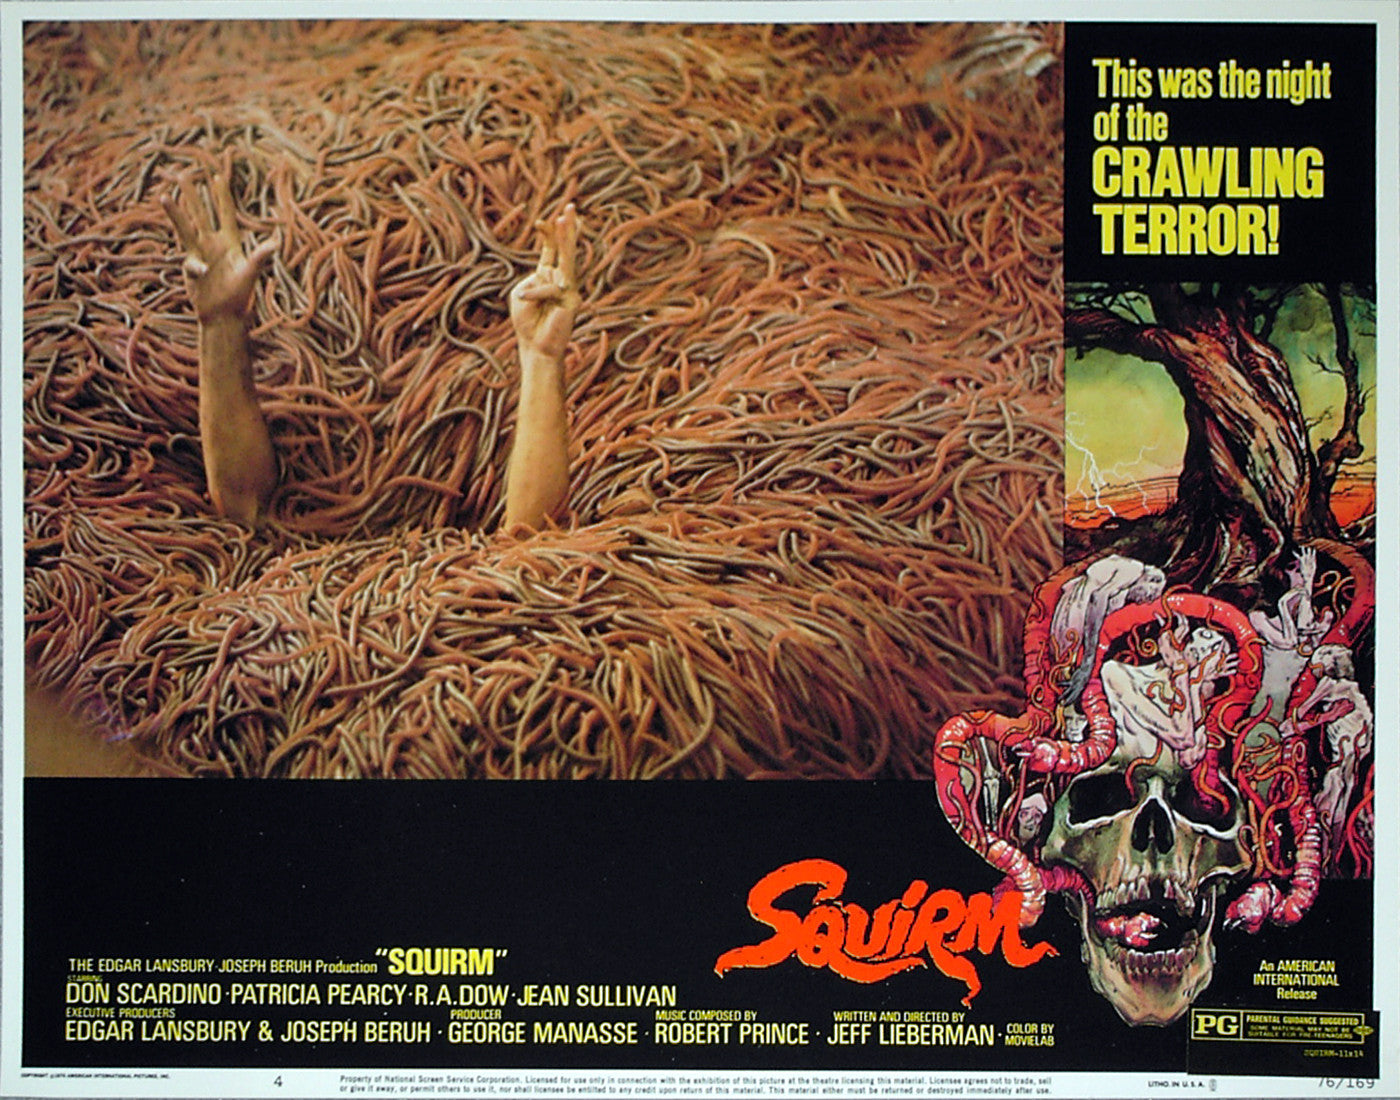 SQUIRM - US lobby card v4